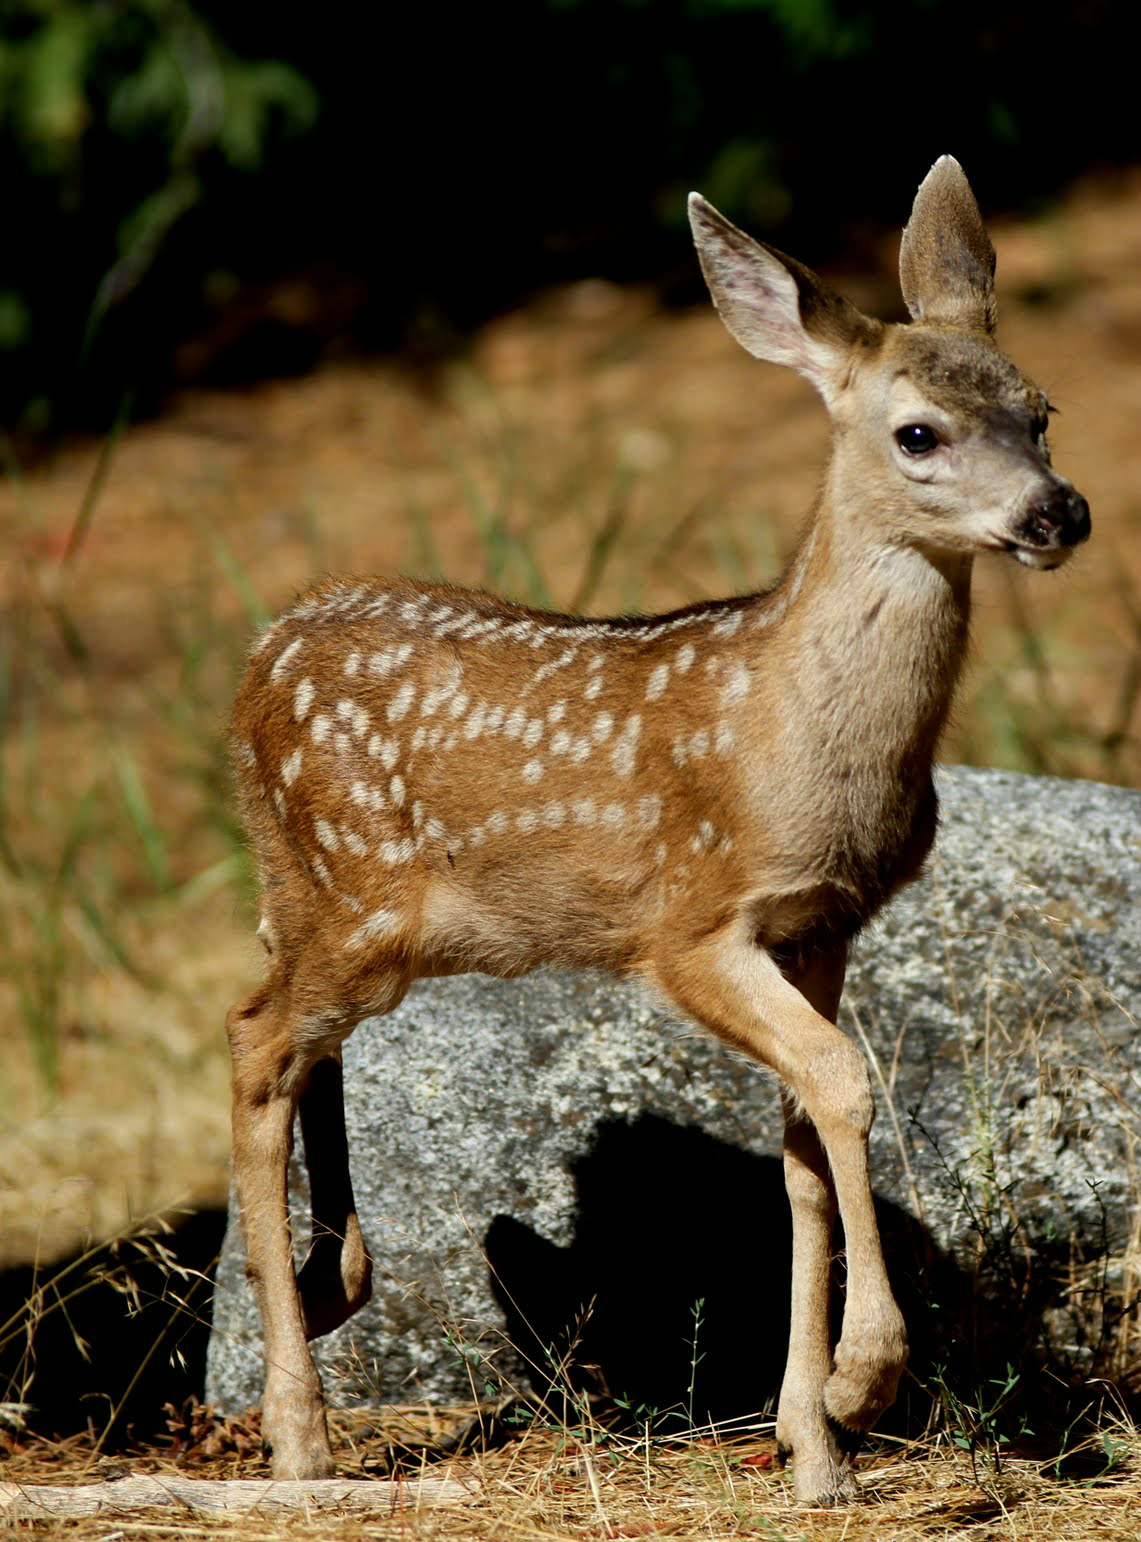 Yosemite National Park Requests Visitors Help The